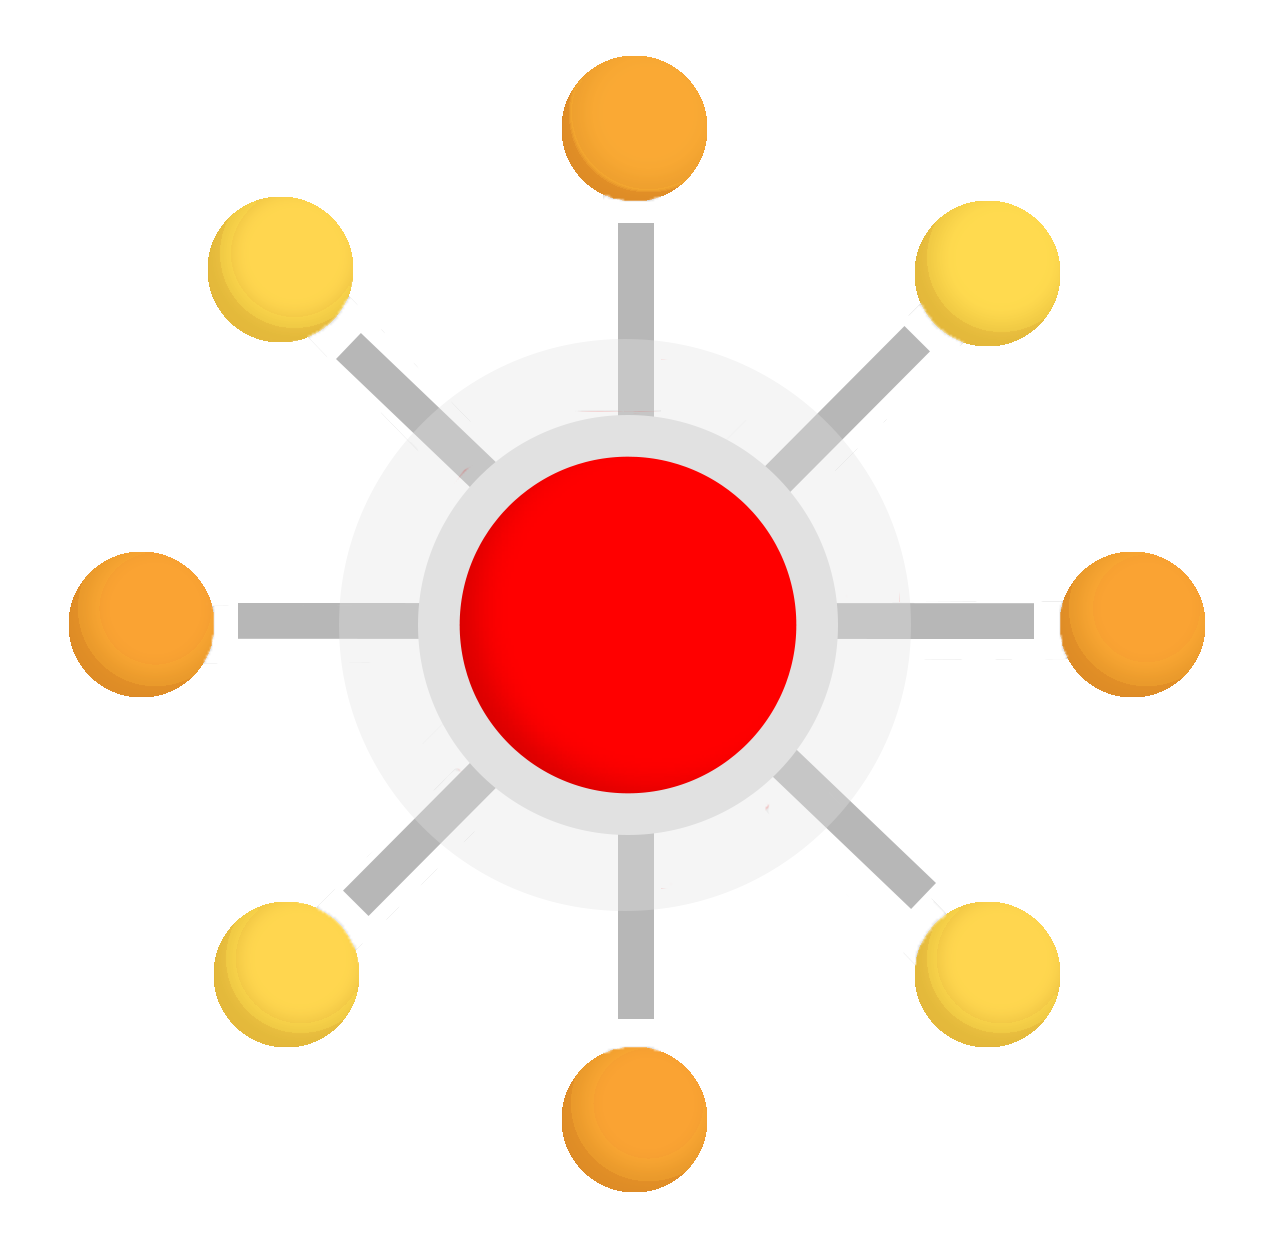 Red Hub with Surrounding Circles